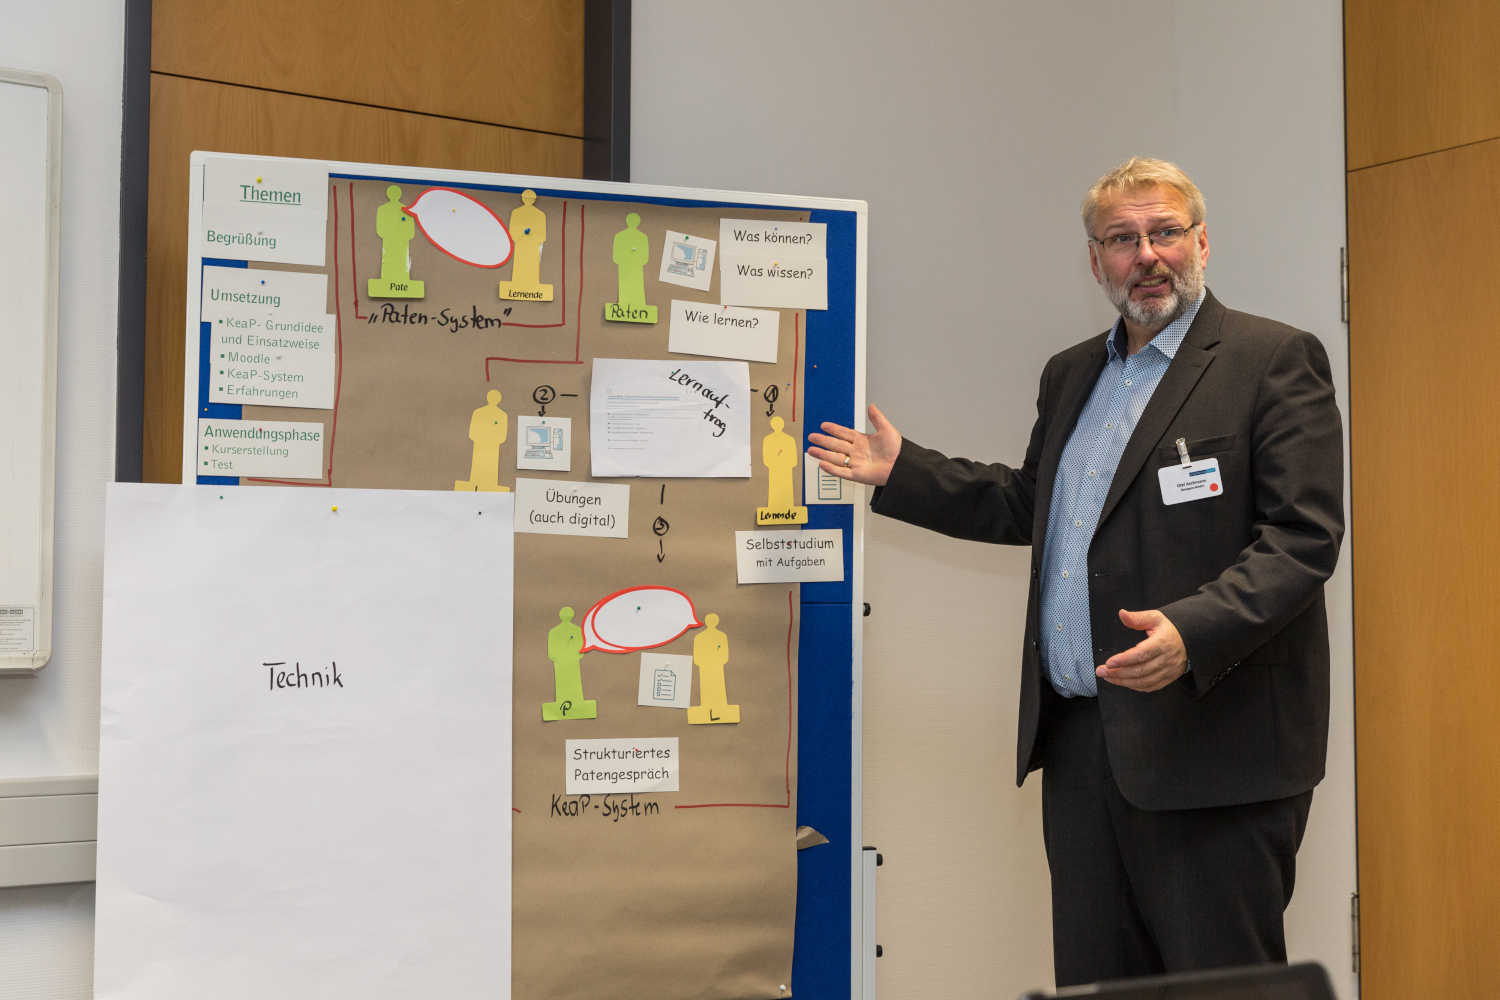 Olaf Aschmann im Workshop KeaP digital am 24. Oktober 2019 in Schwerin